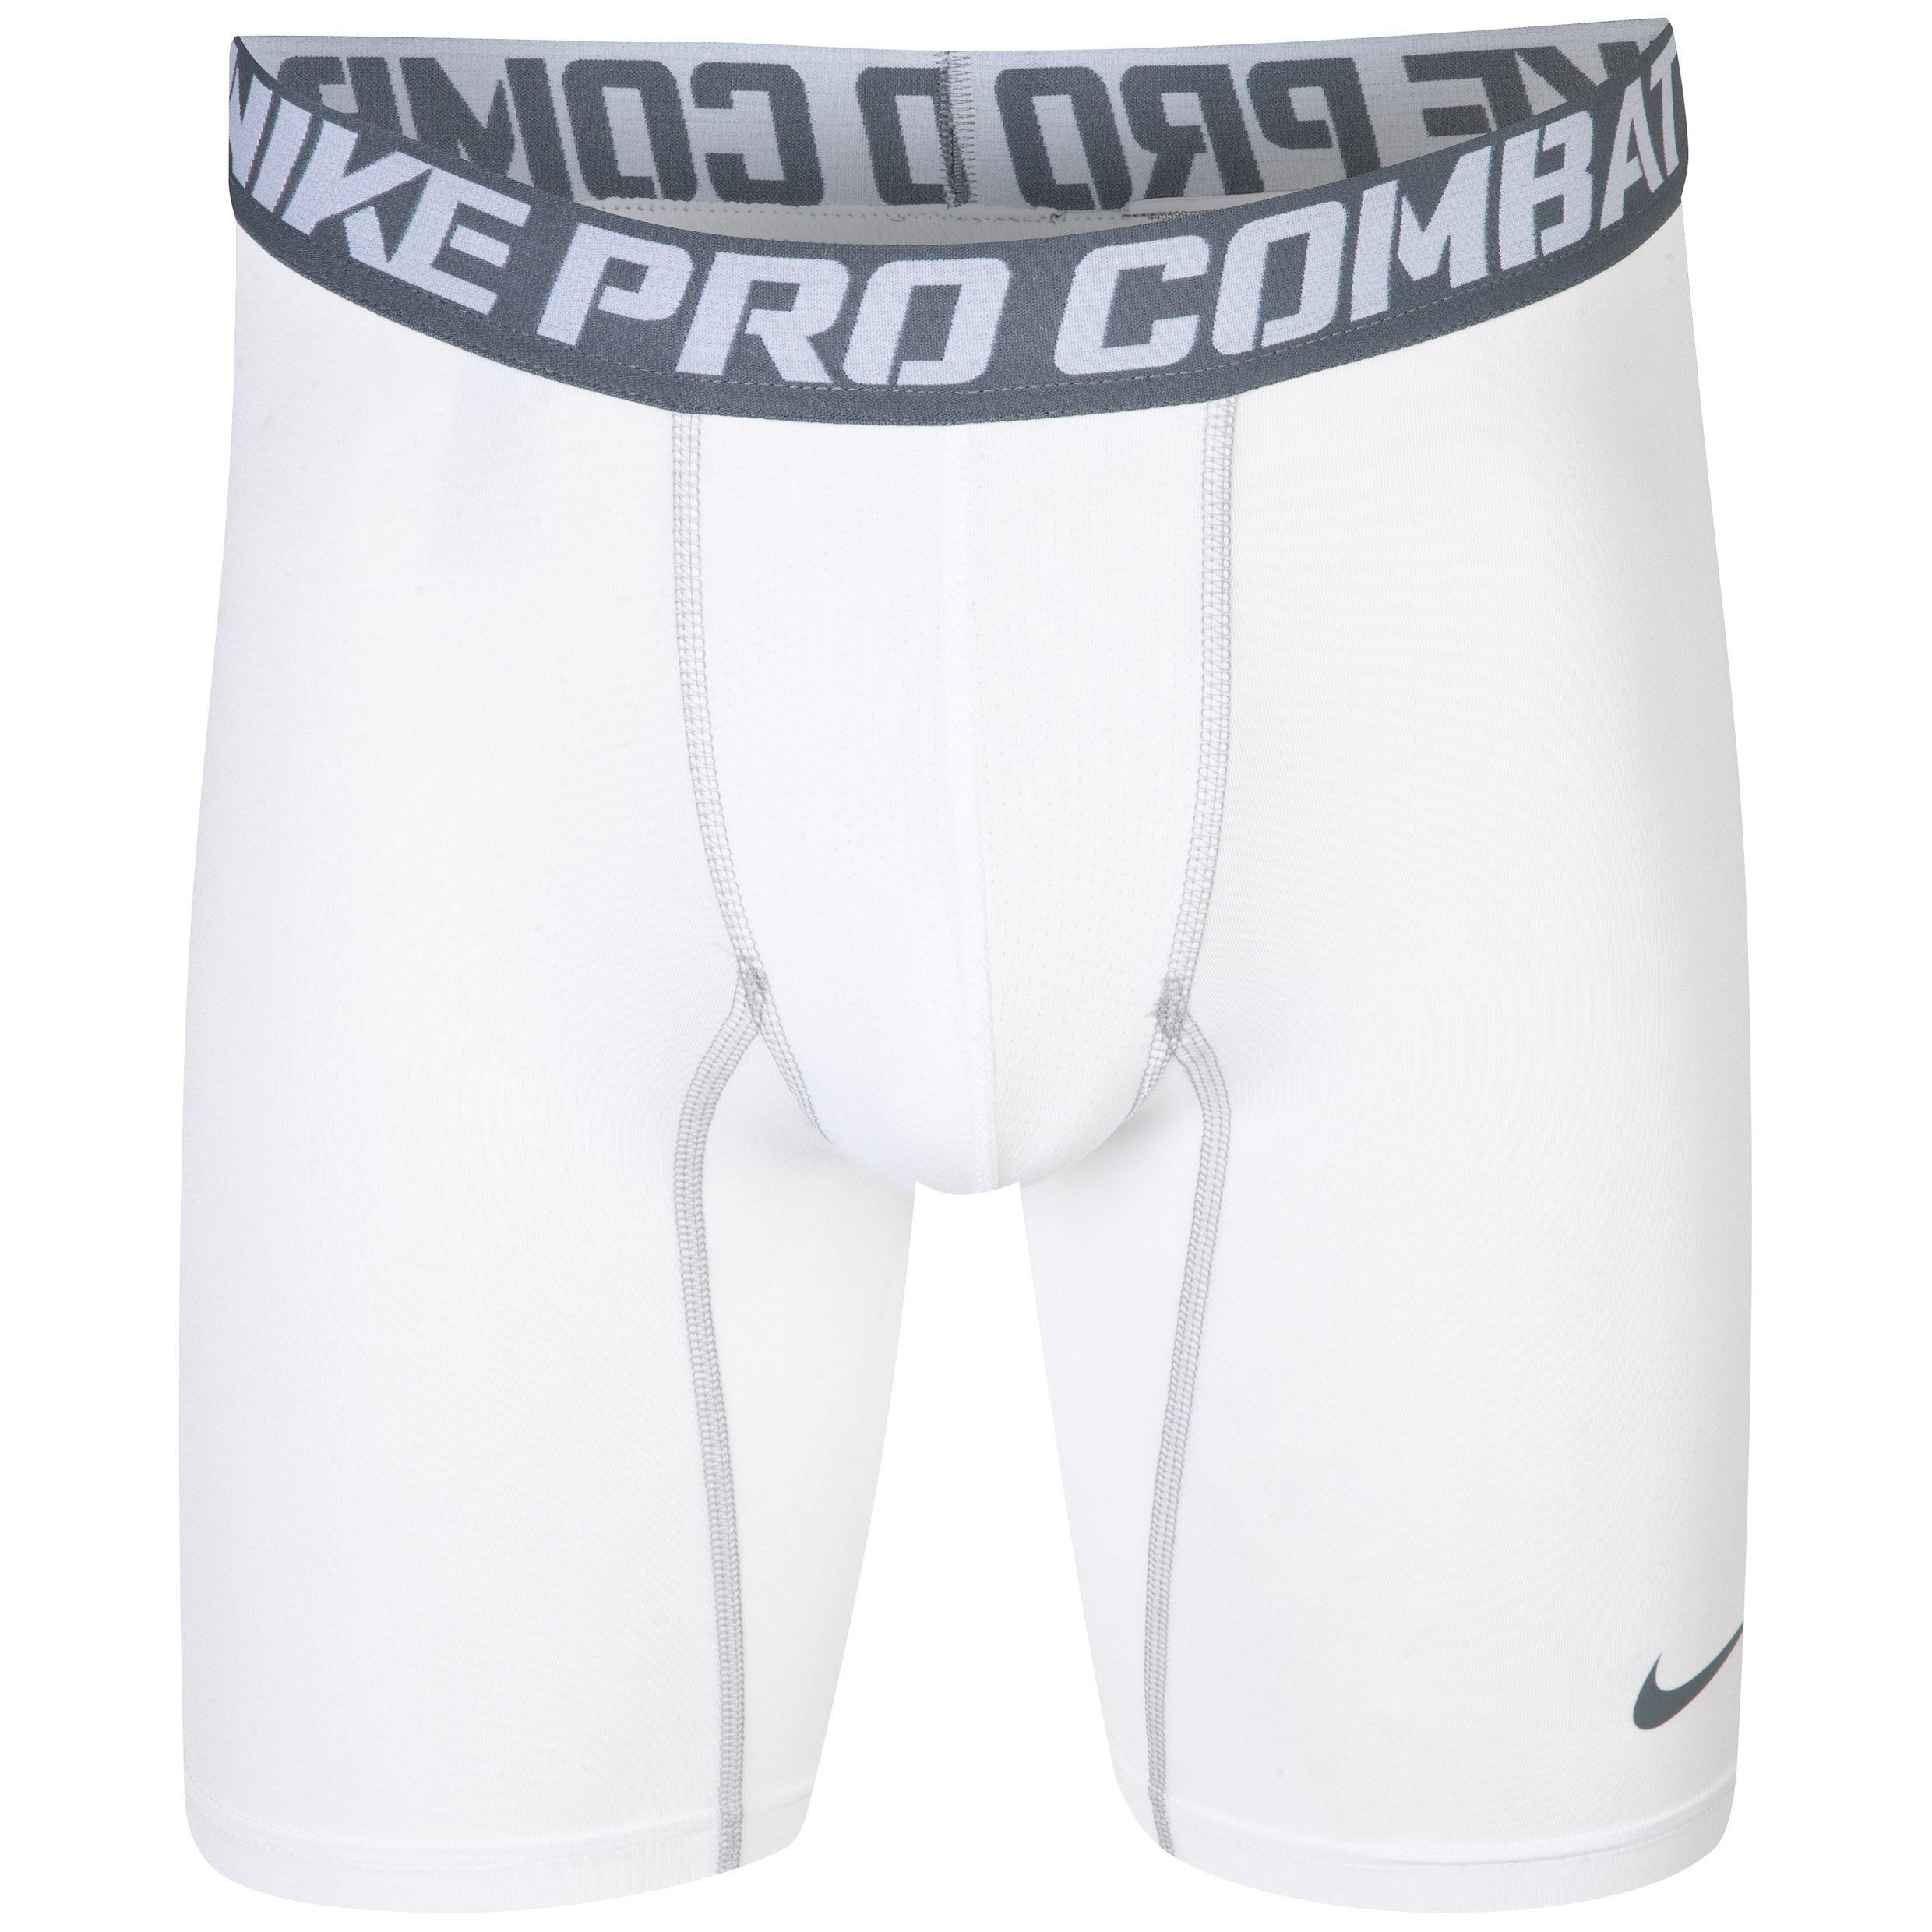 Nike Pro Combat Core Base Layer Shorts - Kids White